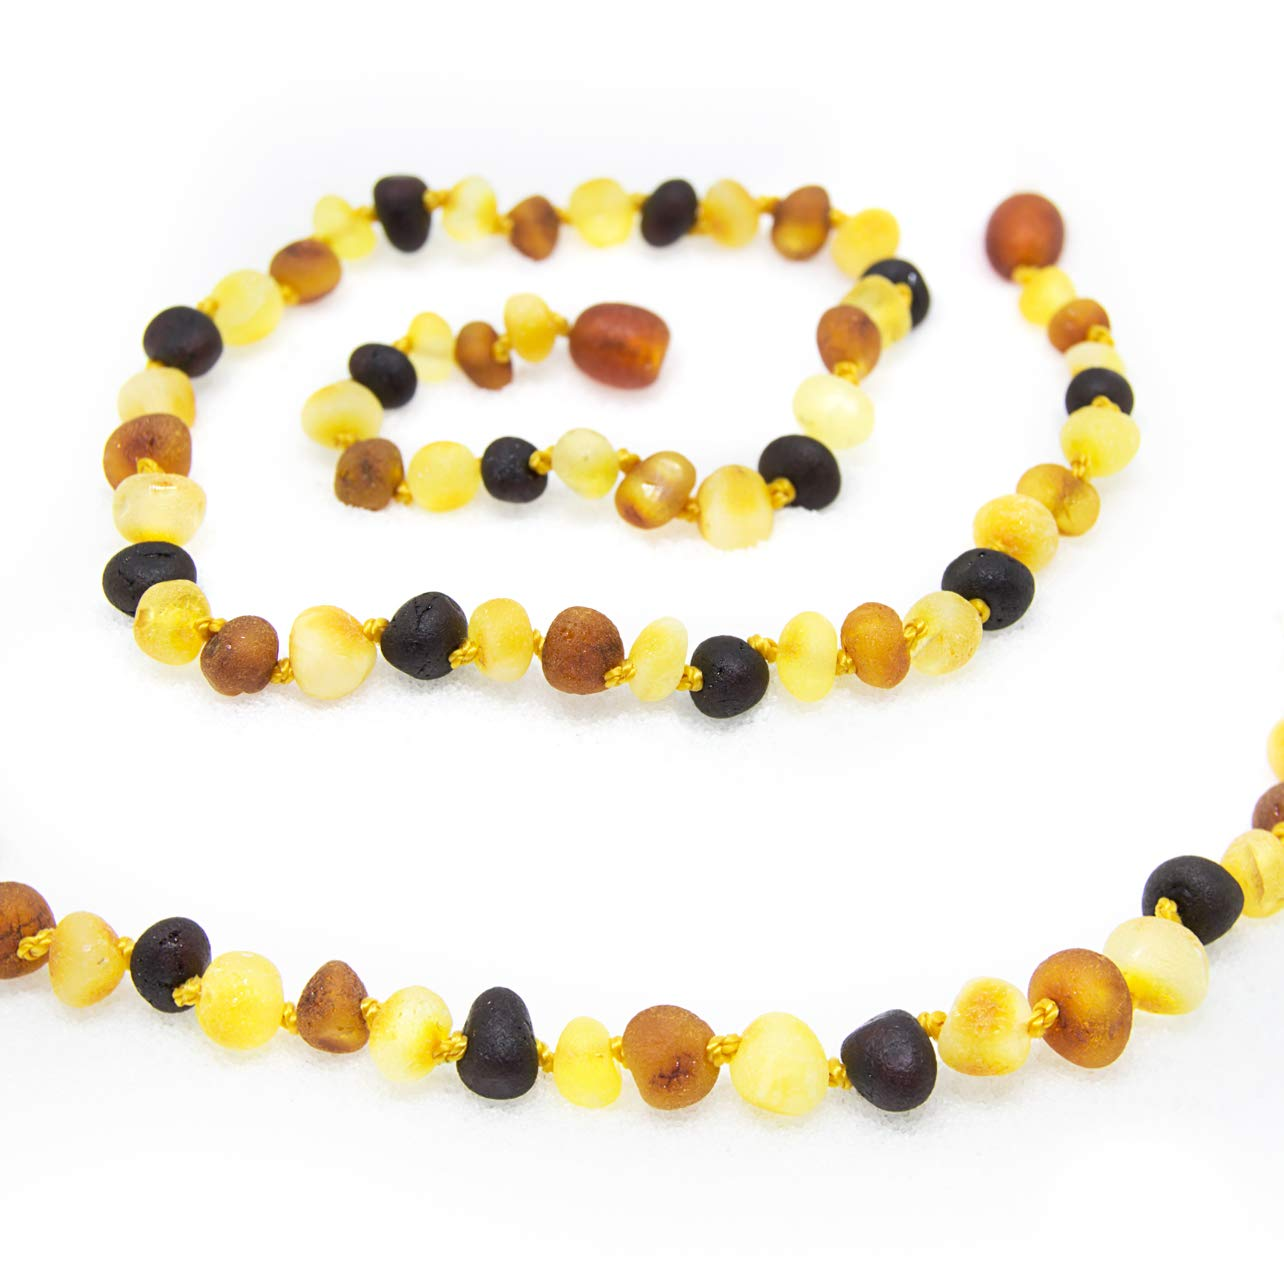 The Art of Cure Baltic Amber Necklace 17 Inch (raw multicolored) - Anti-inflammatory by The Art of Cure